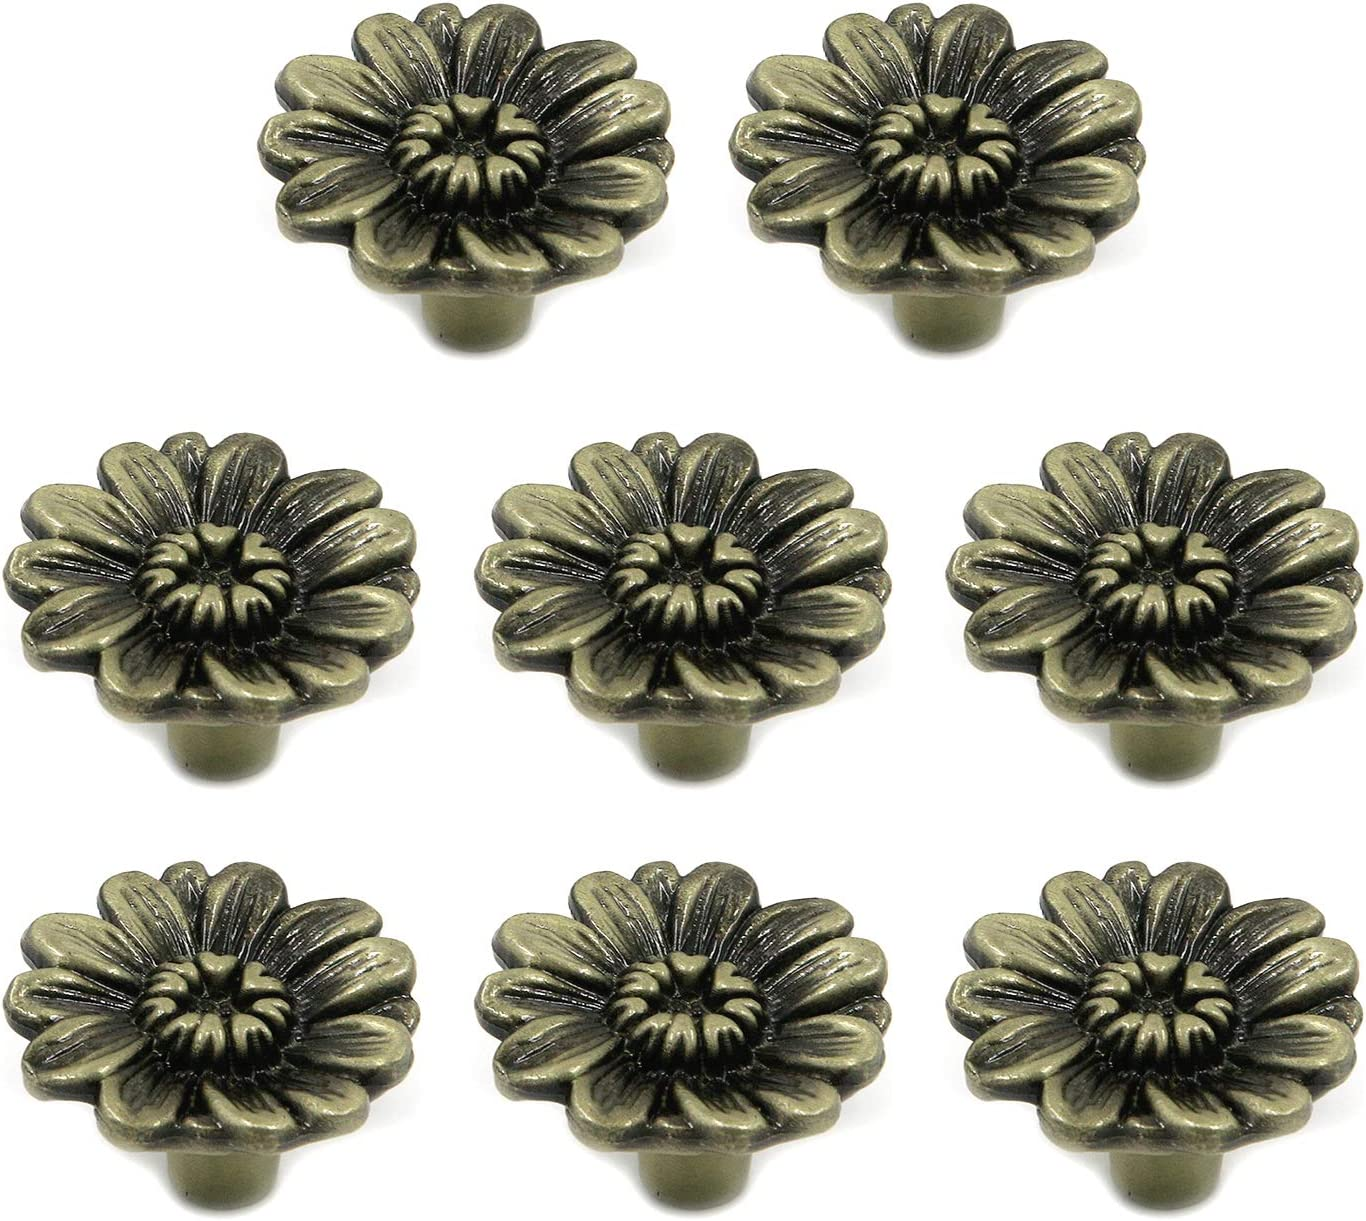 FarBoat Drawer Knobs Antique Flower Cabinet Decorative Pull Handles Zinc Alloy Hardware for Cupboard Wardrobe Kitchen Bathroom with Screws, 8Pcs(Bronze, 34x22mm/1.34x0.87inch)